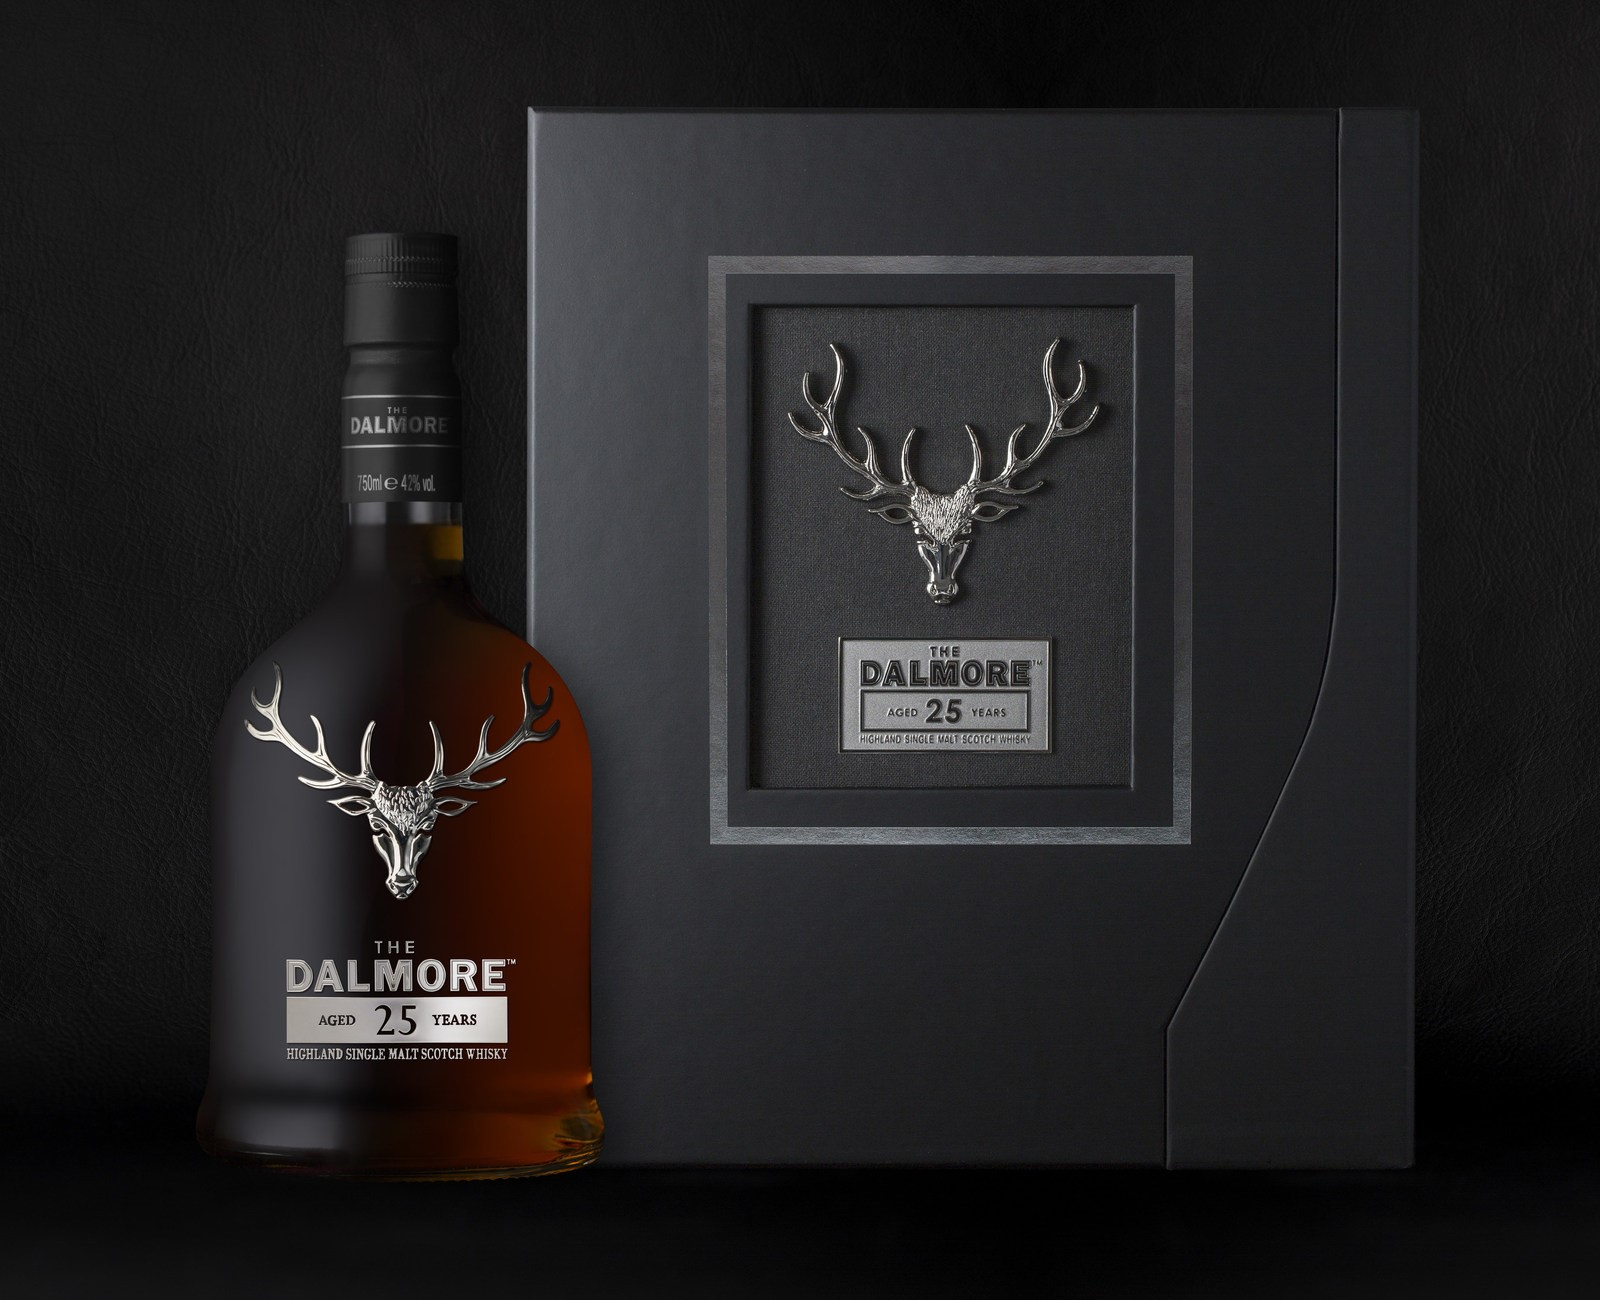 The Dalmore 25 Year Old Single Malt Scotch whisky